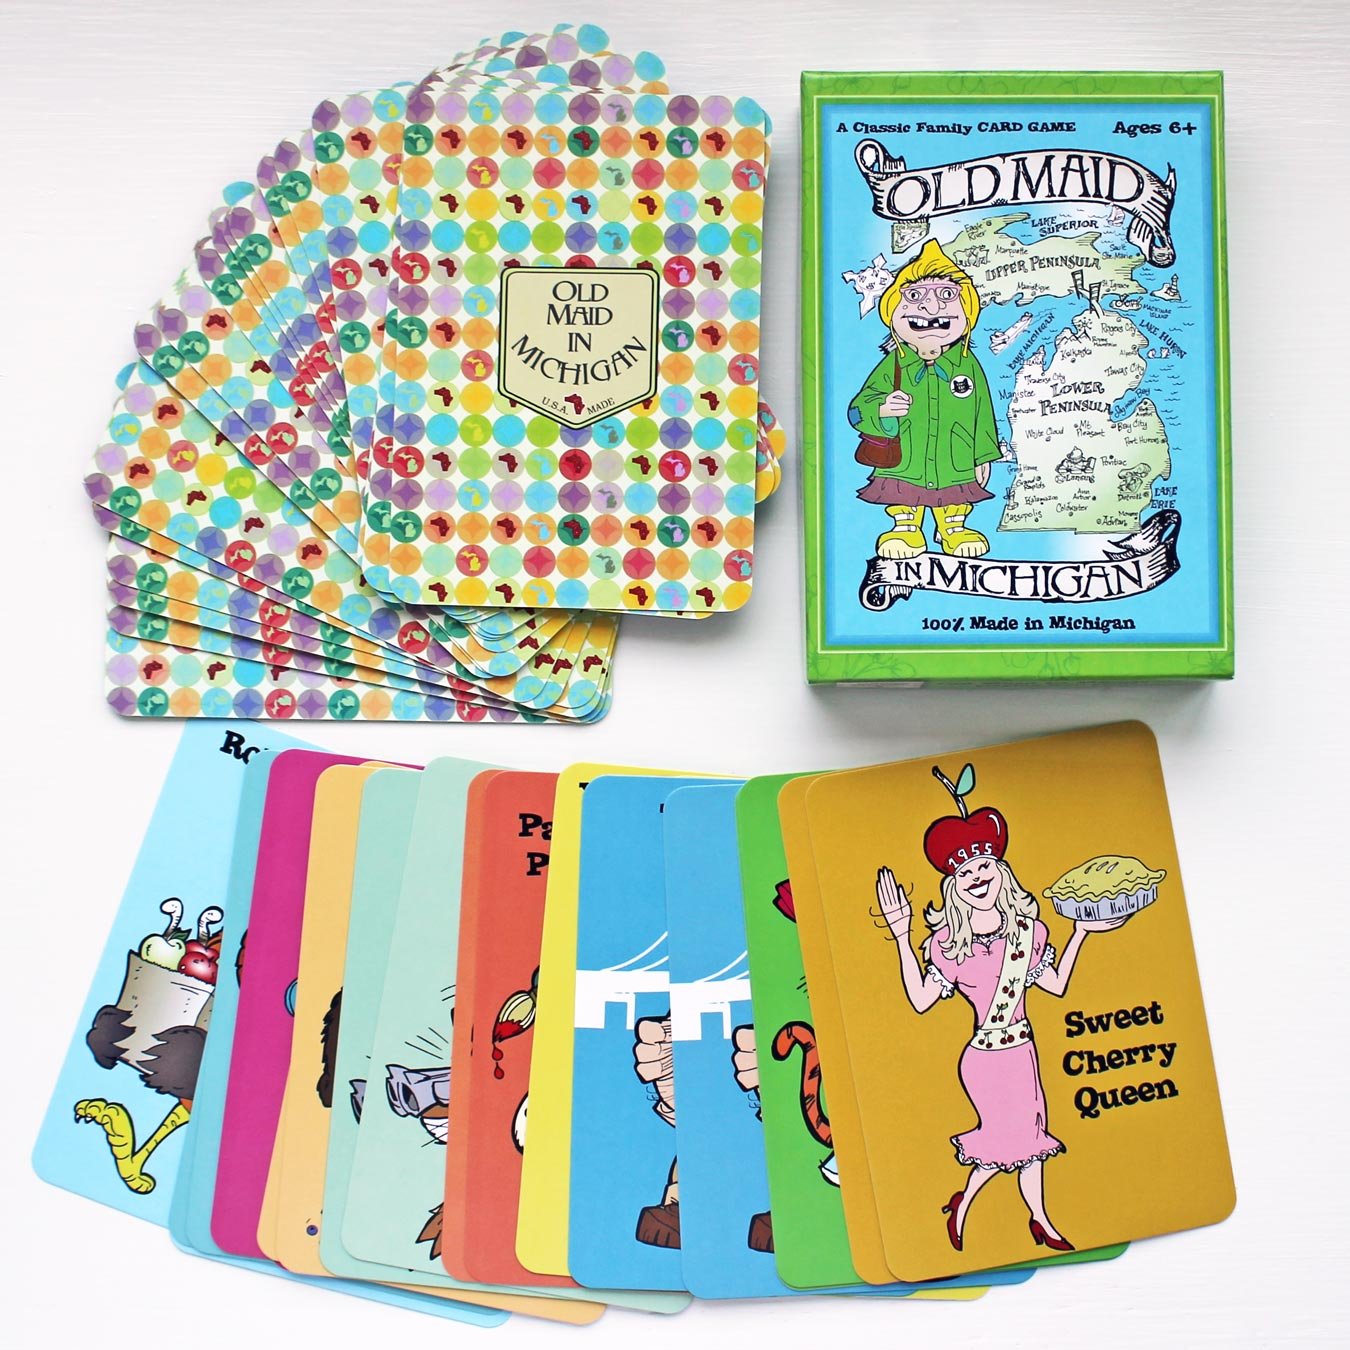 Old Maid in Michigan: A new twist on the classic card game! Featuring lovable characters that represent the state of Michigan. // 4 Fun Gift Ideas From Michigan Mittens  (via Wading in Big Shoes)